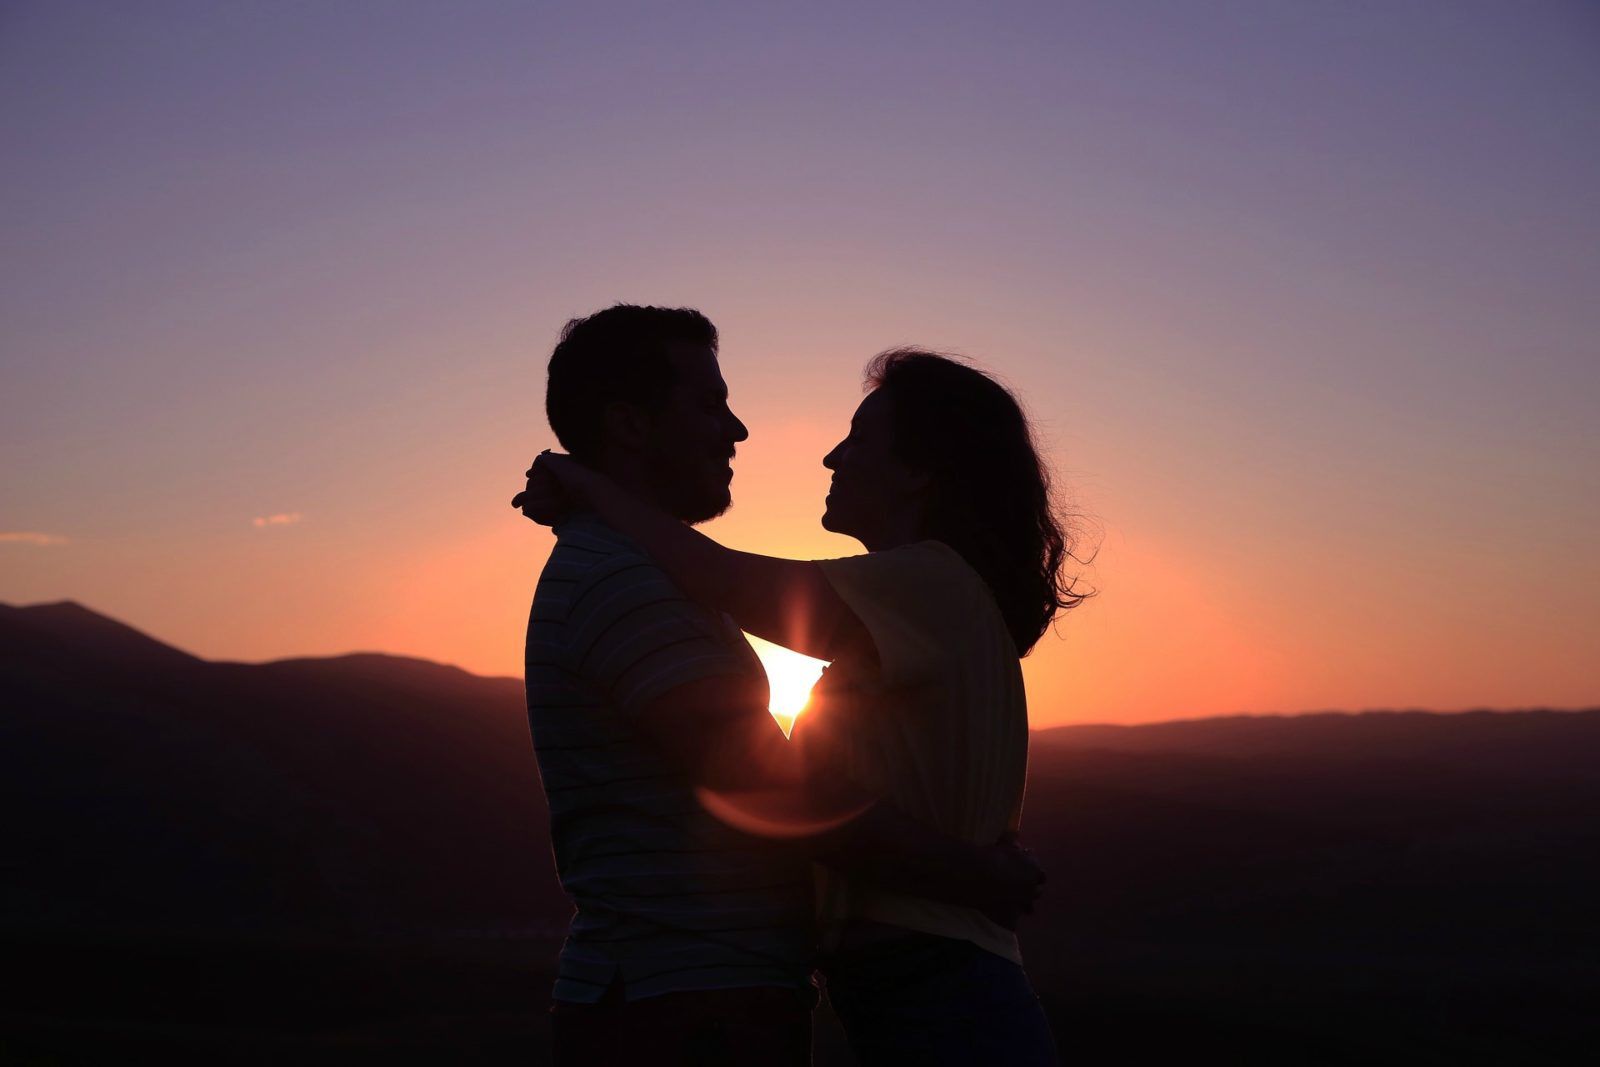 Simple things such as cuddling or kissing can do wonders for intimacy.